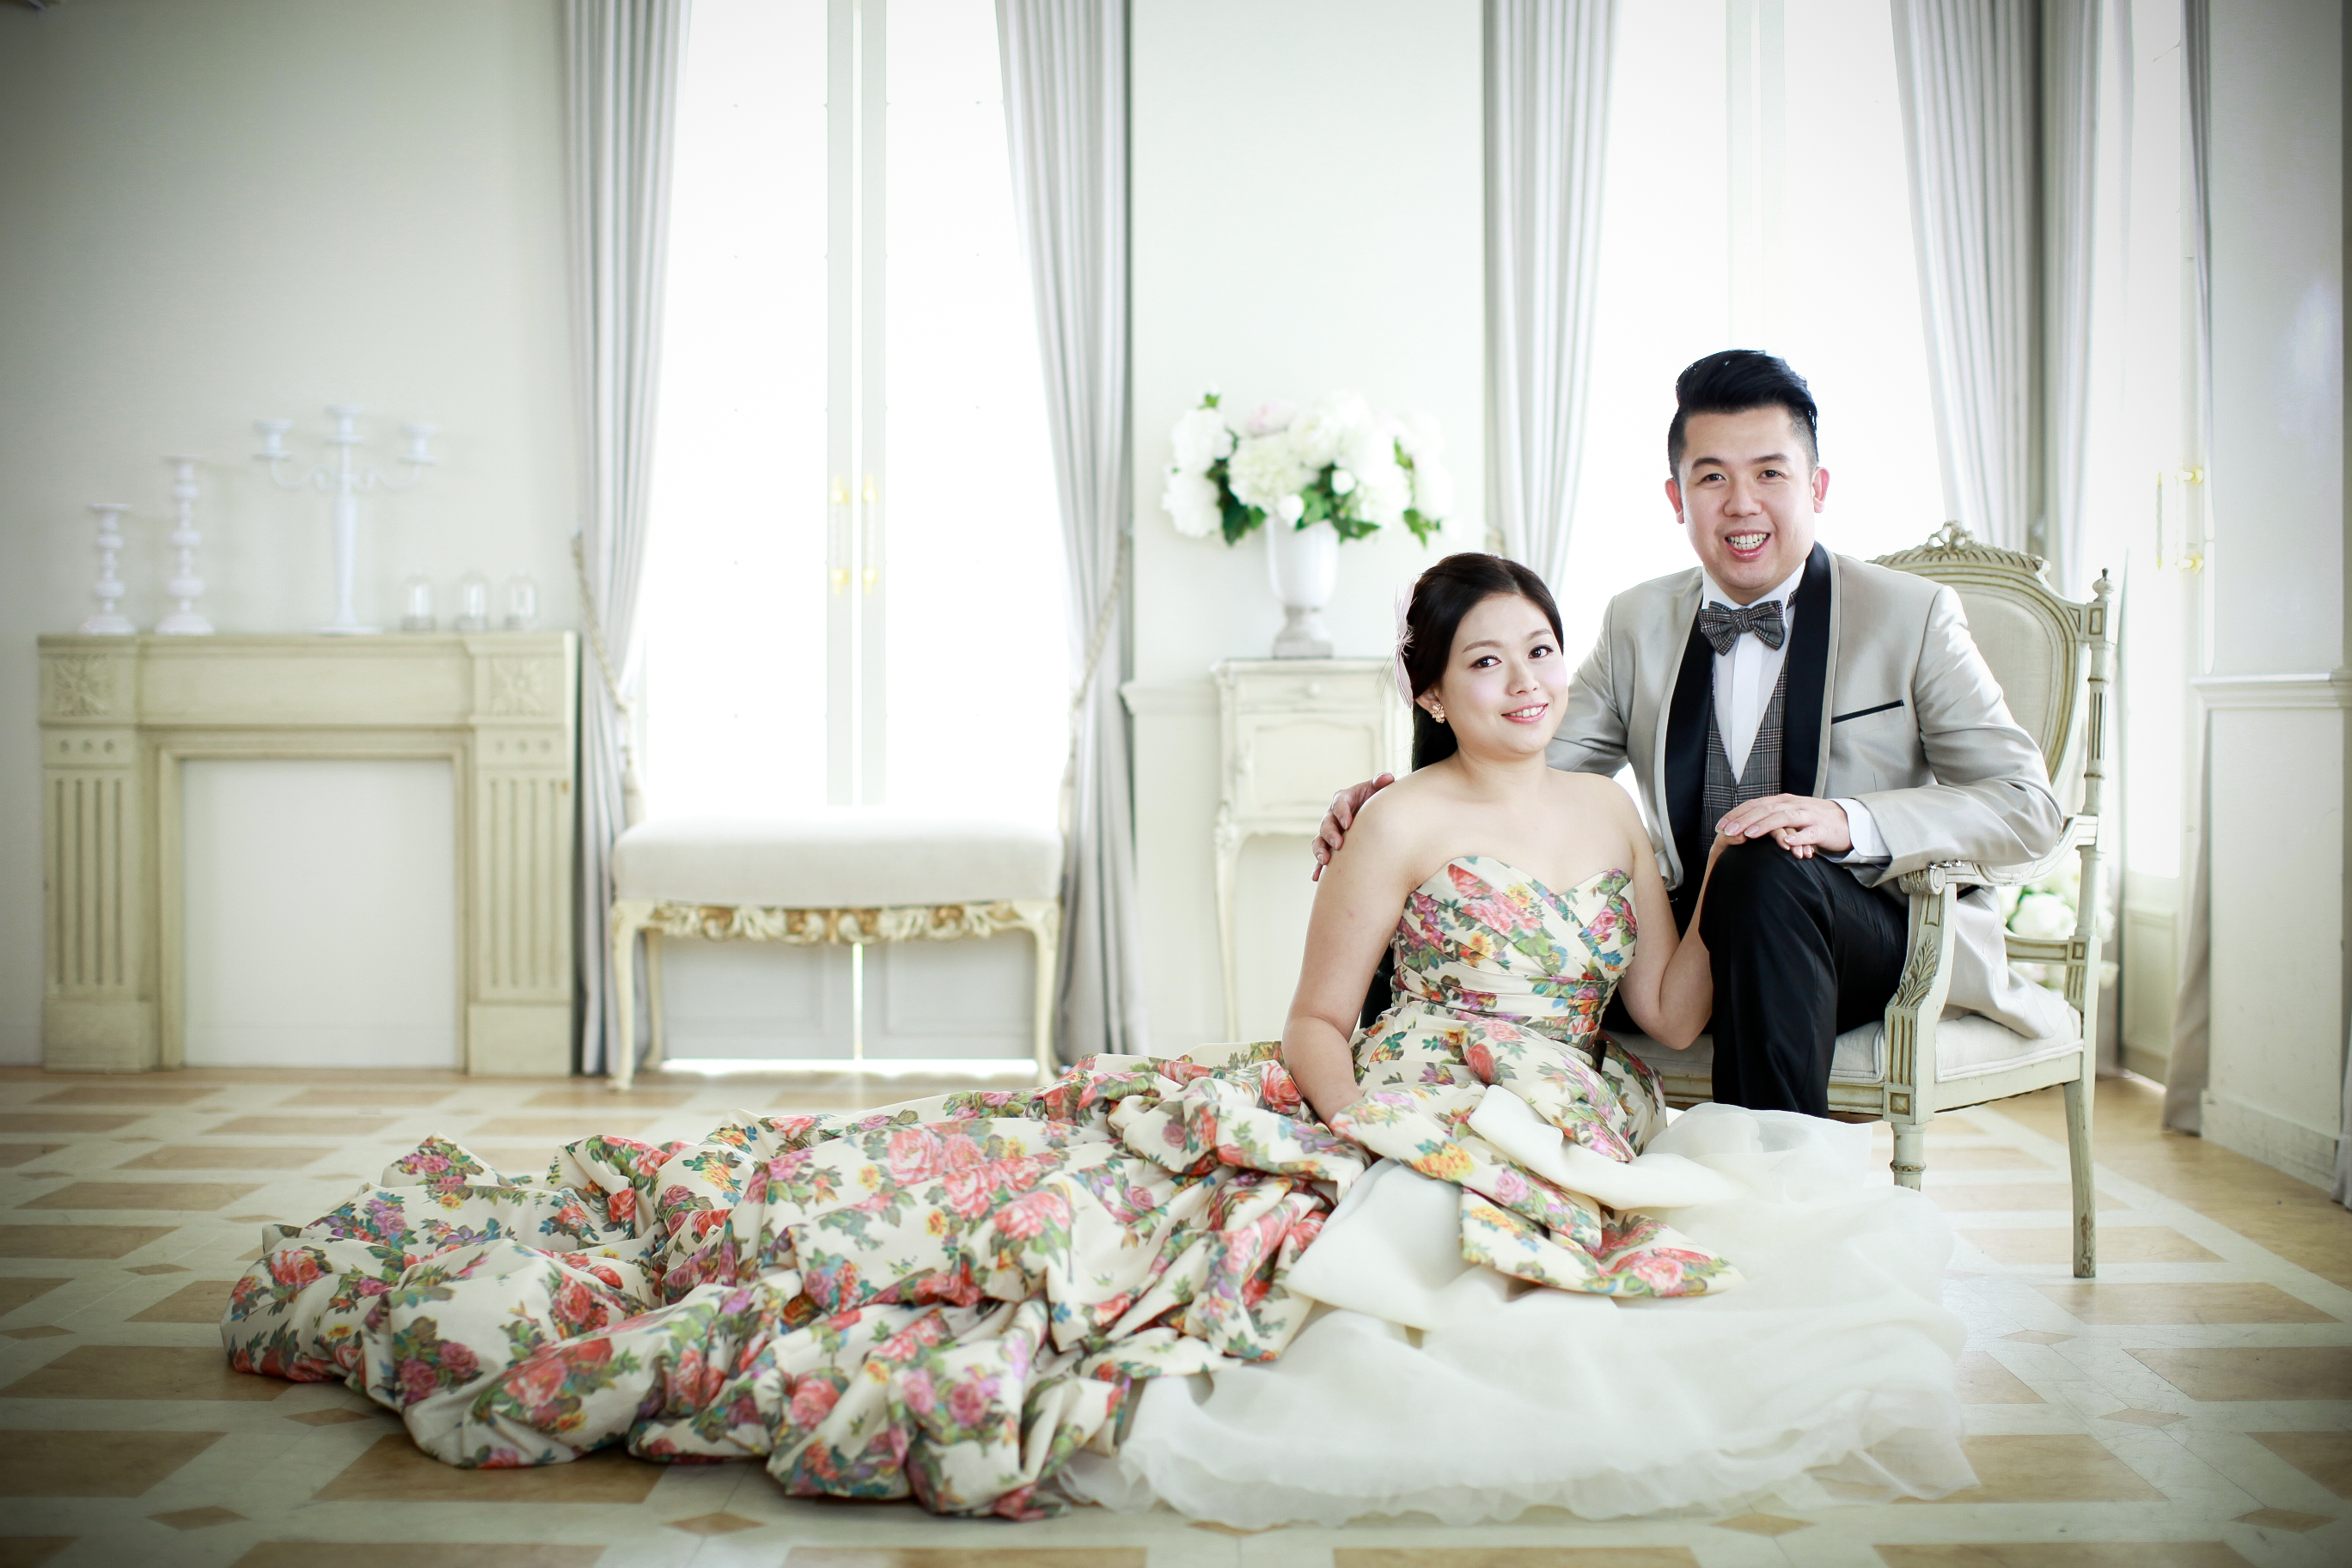 Singapore Wedding Photography  Korean Wedding Photo  Ido. Wedding Favors Donation To Charity. Best Website For Buying Wedding Dress. Butterfly Wedding Exit. Wedding Bride Pinterest. Wedding Vows Best. Dream Wedding Video Uk. Creative Wedding Invitation Ideas Diy. On Your Wedding Day Karaoke